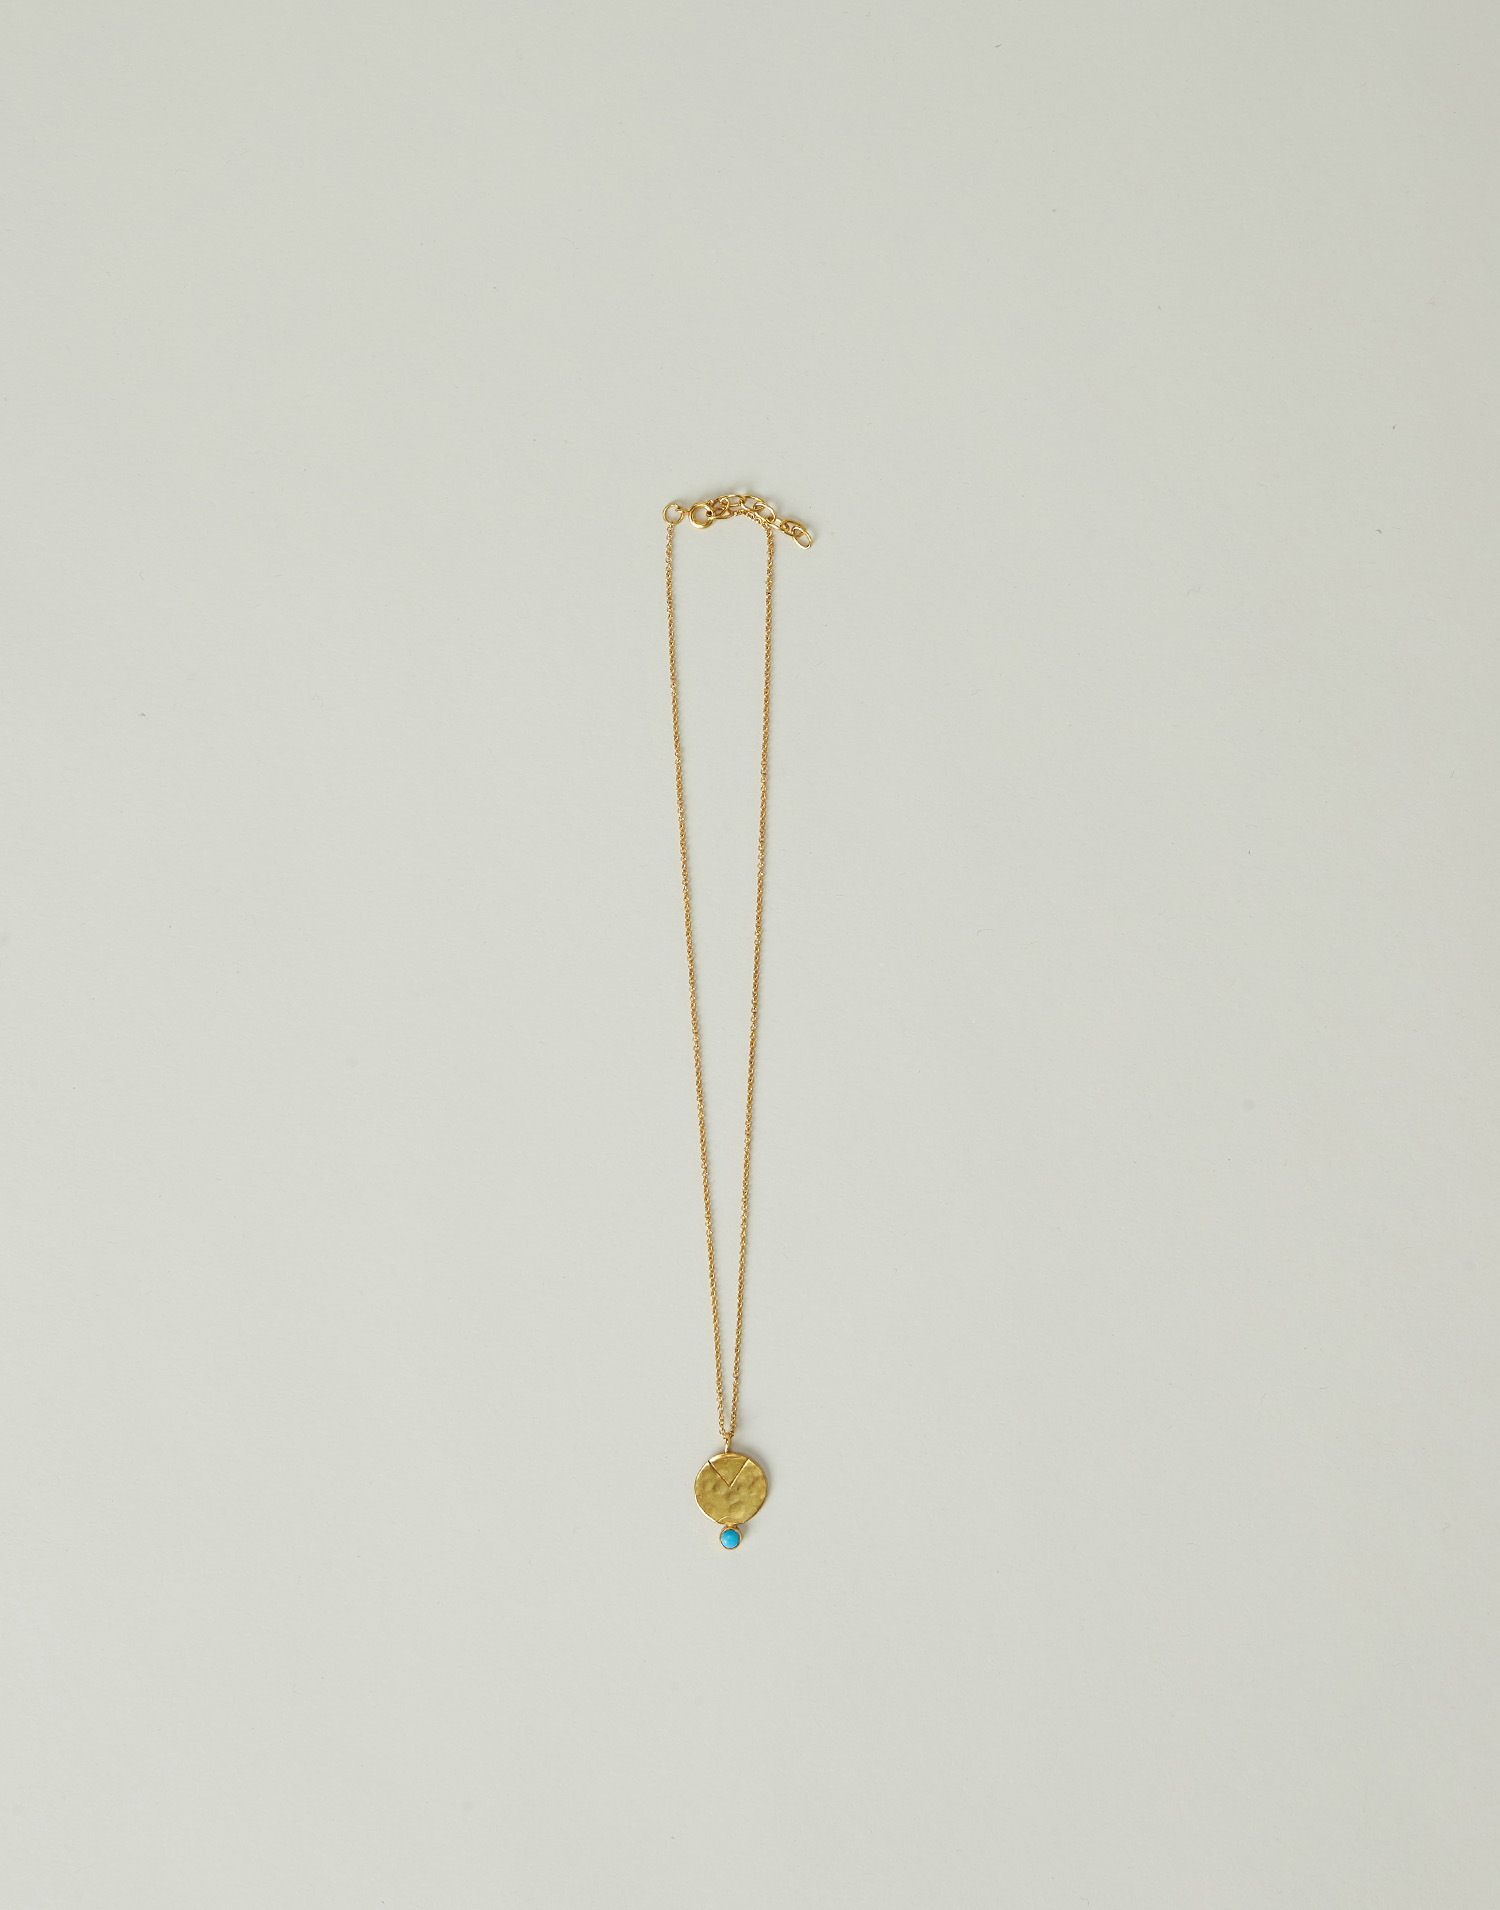 Gilded turquoise necklace